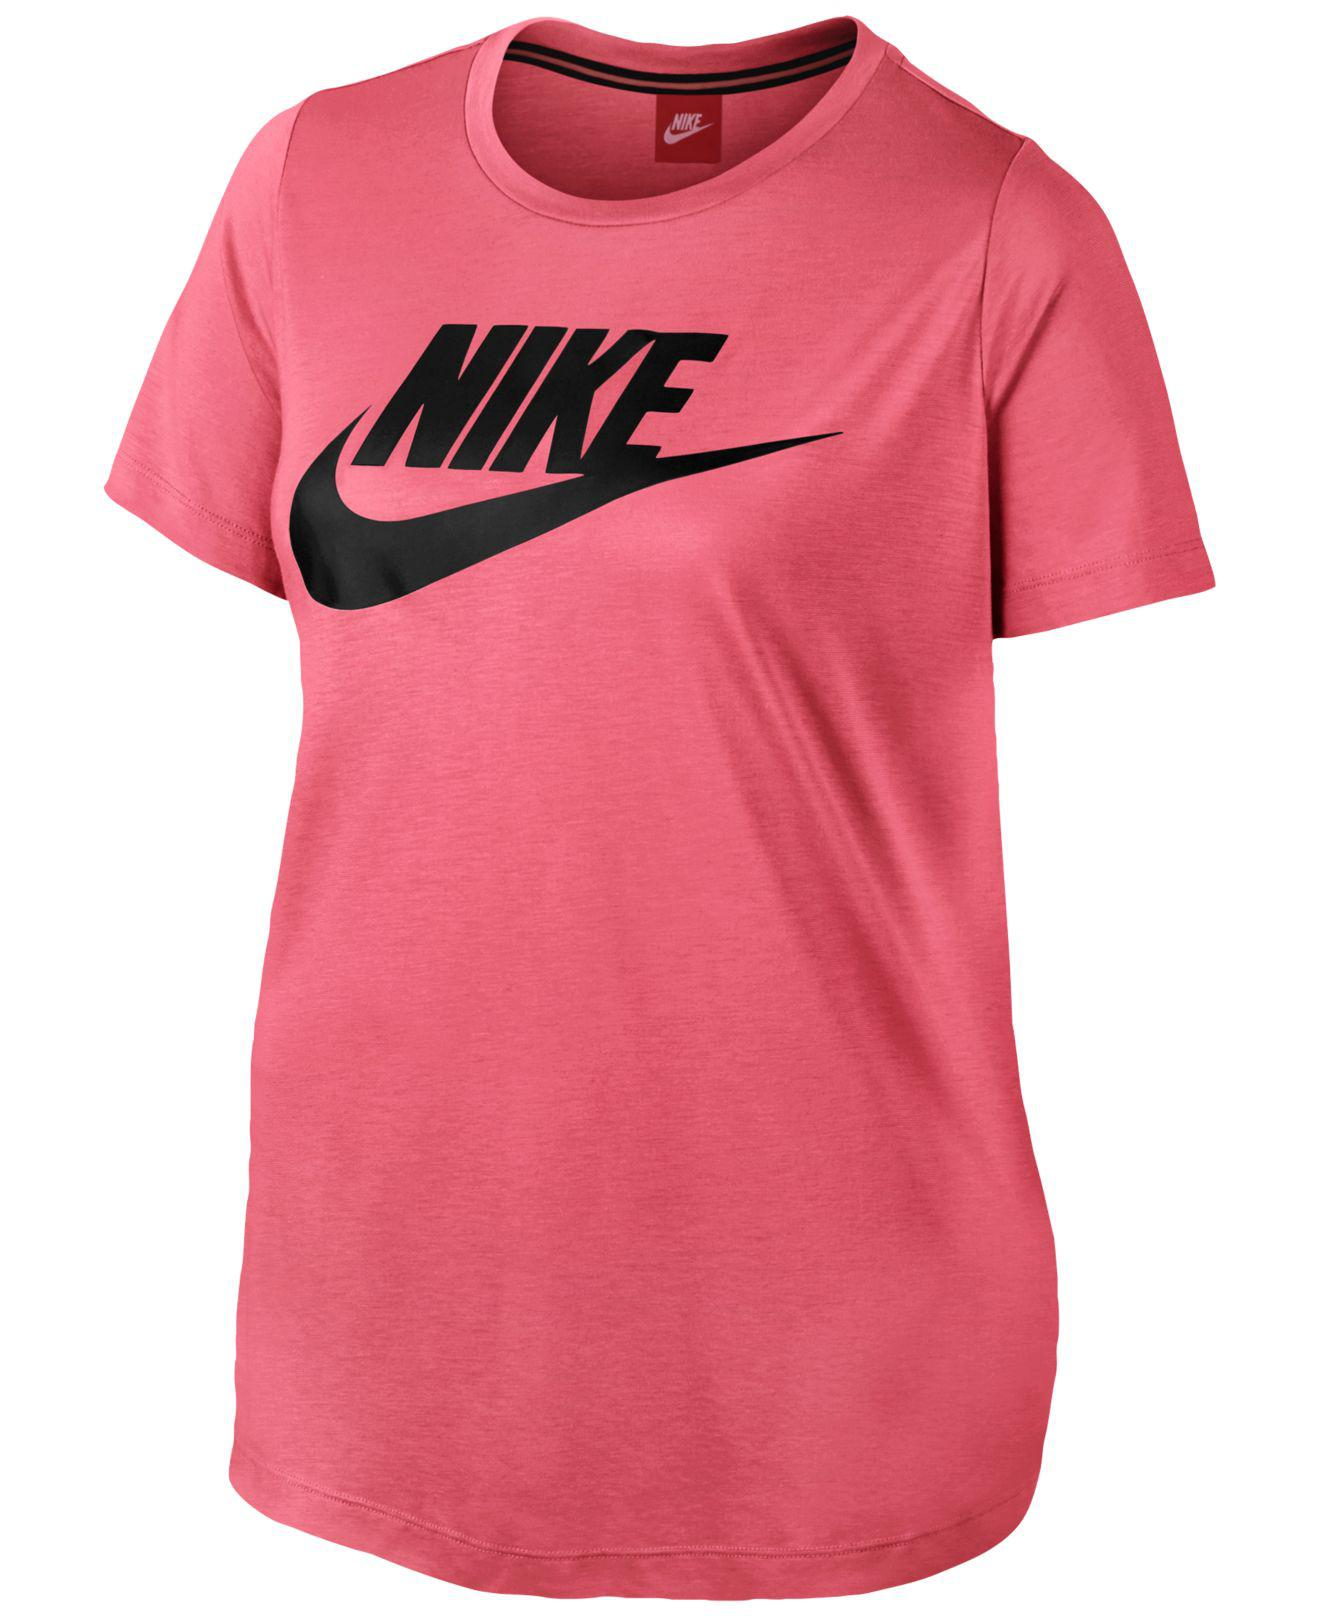 aba9f8c7908 Lyst - Nike Plus Size Futura Logo T-shirt in Pink